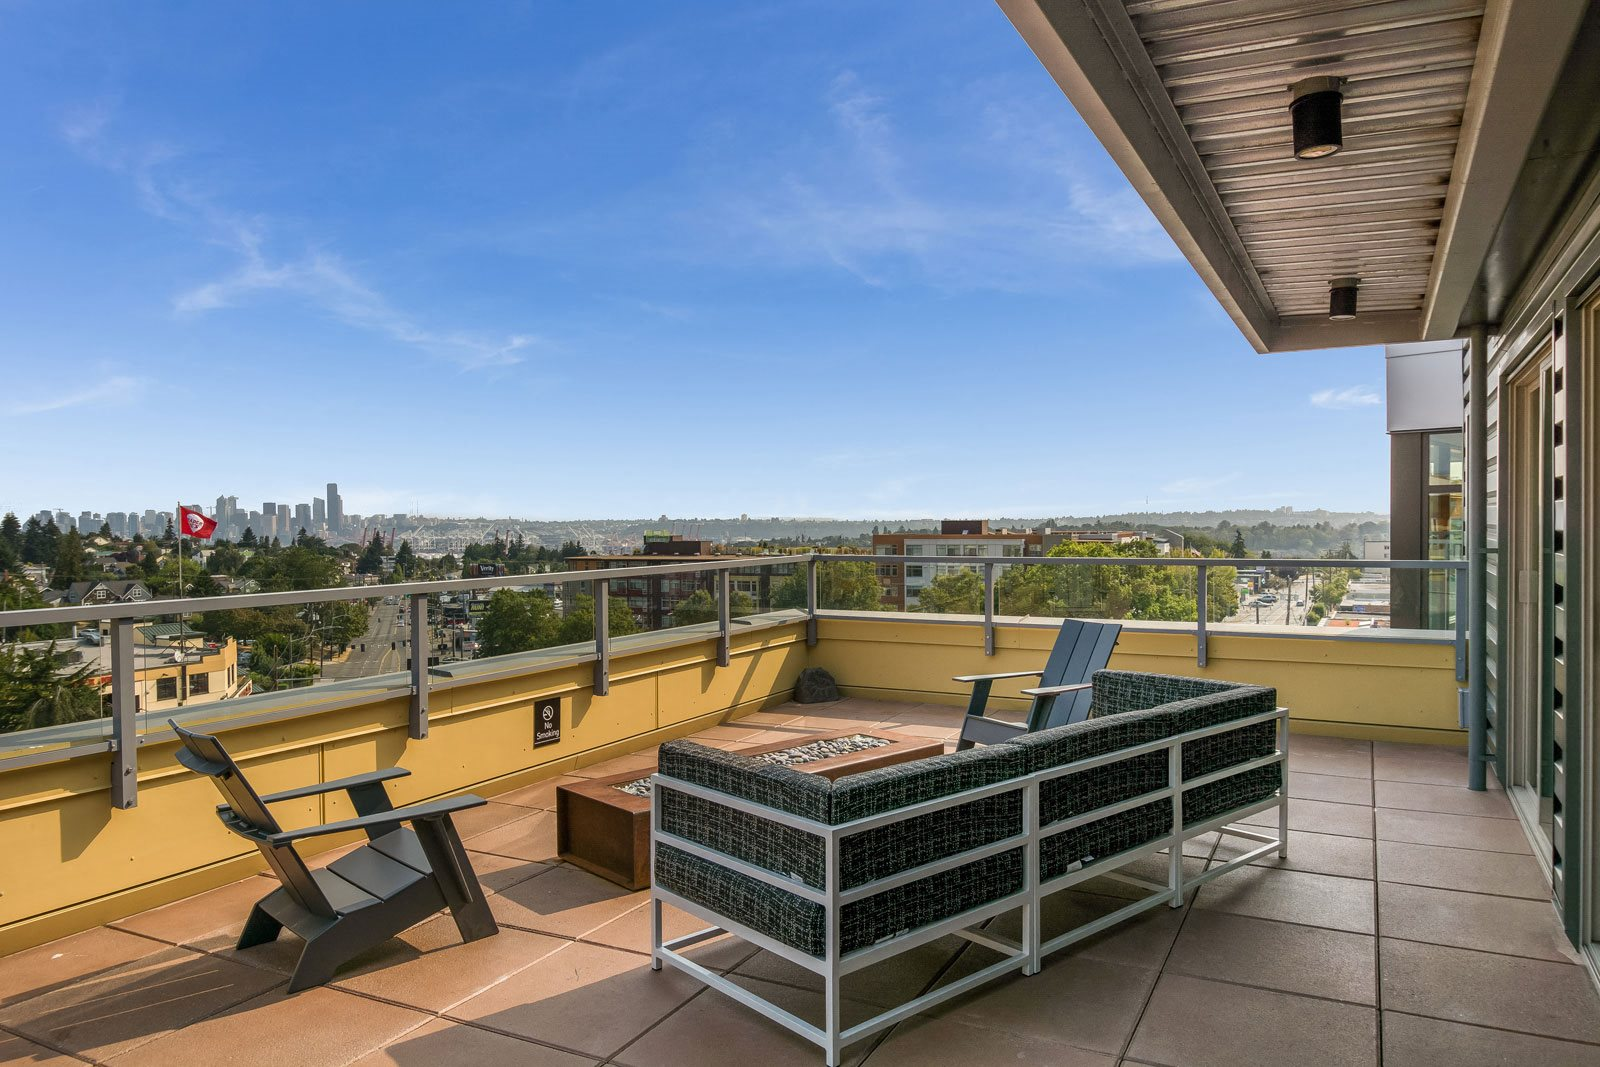 Relaxing Outdoor Lounge Area with Fire Pit at The Whittaker, 4755 Fauntleroy Way, Washington